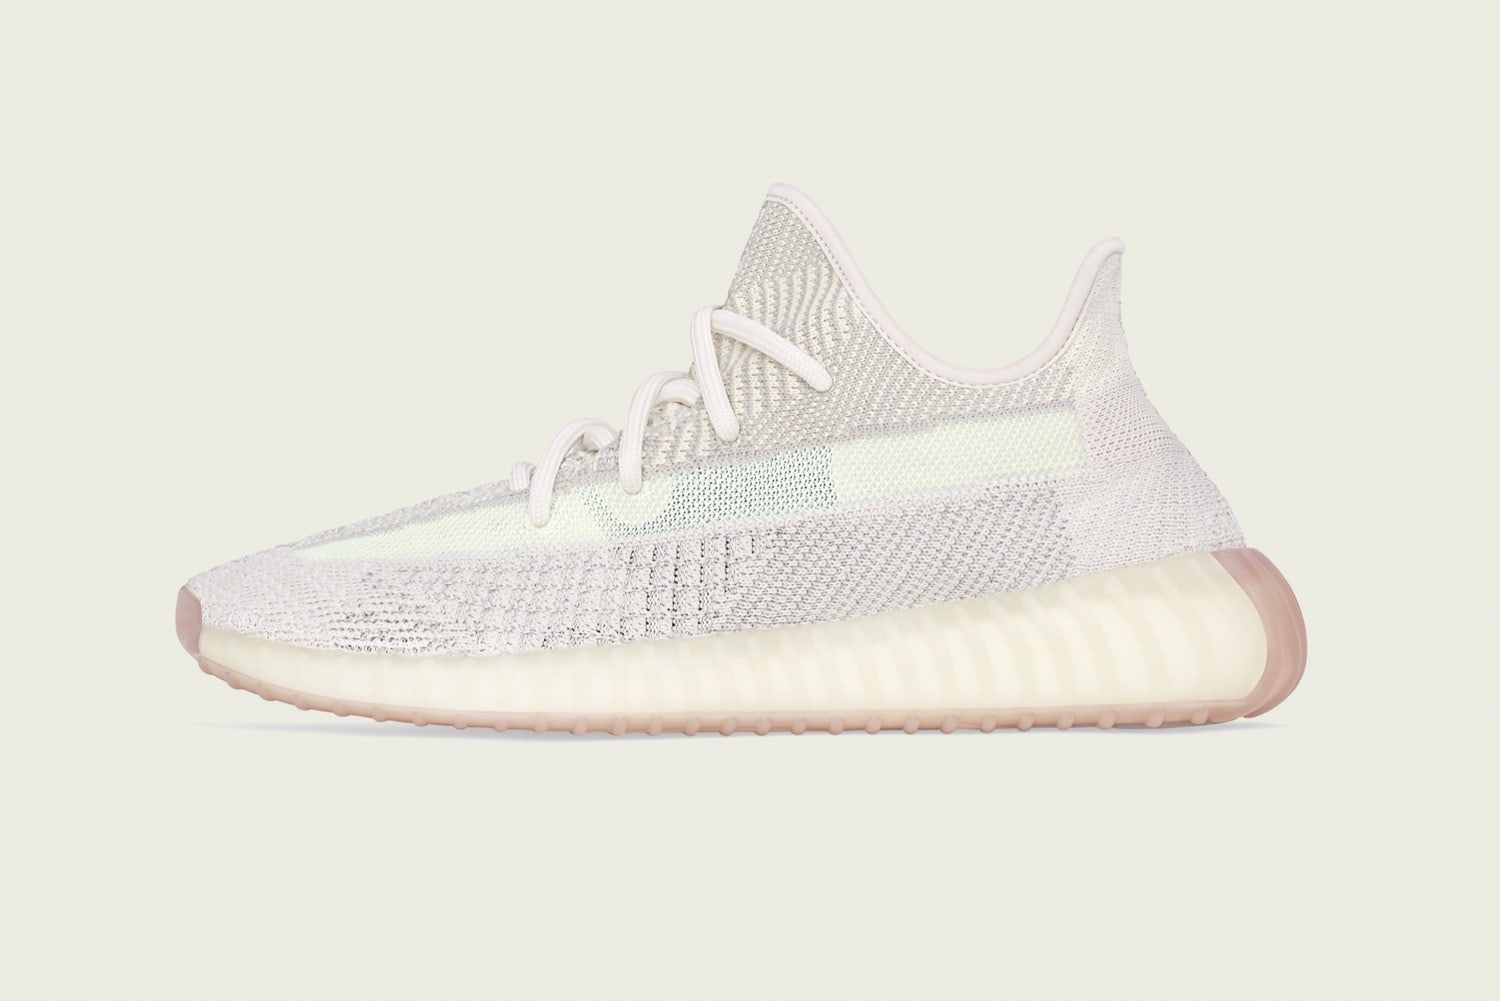 check out 3bc09 fbd2d END. Features | adidas + KANYE WEST YEEZY BOOST 350 V2 ...